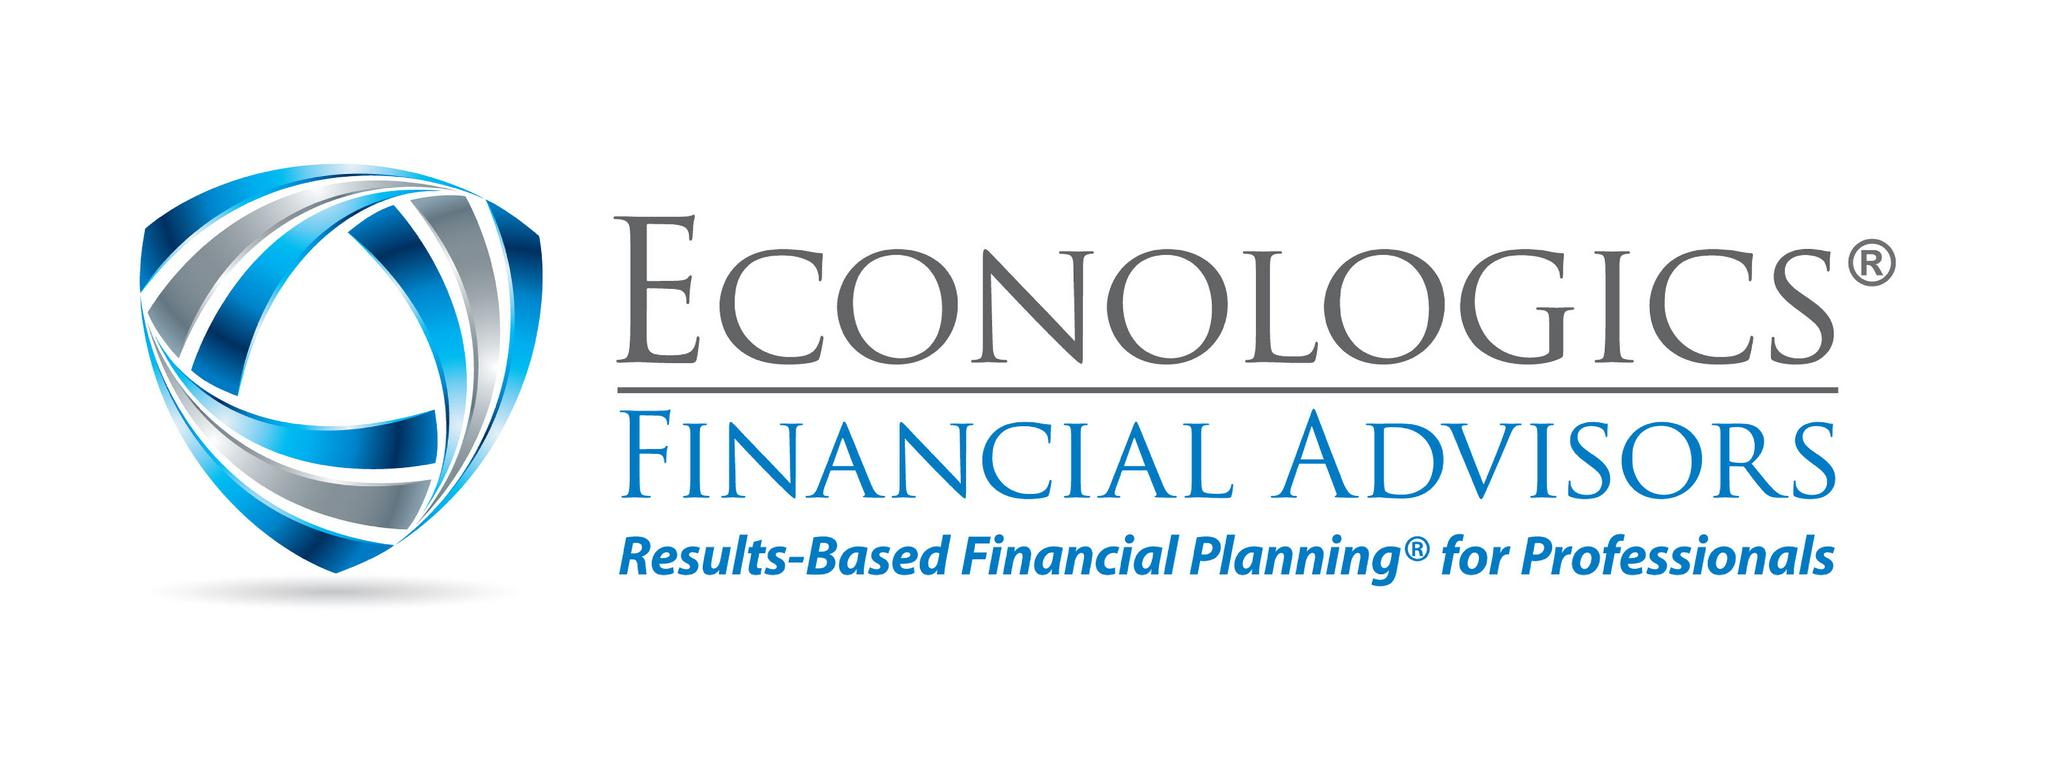 Econologics Financial Advisors